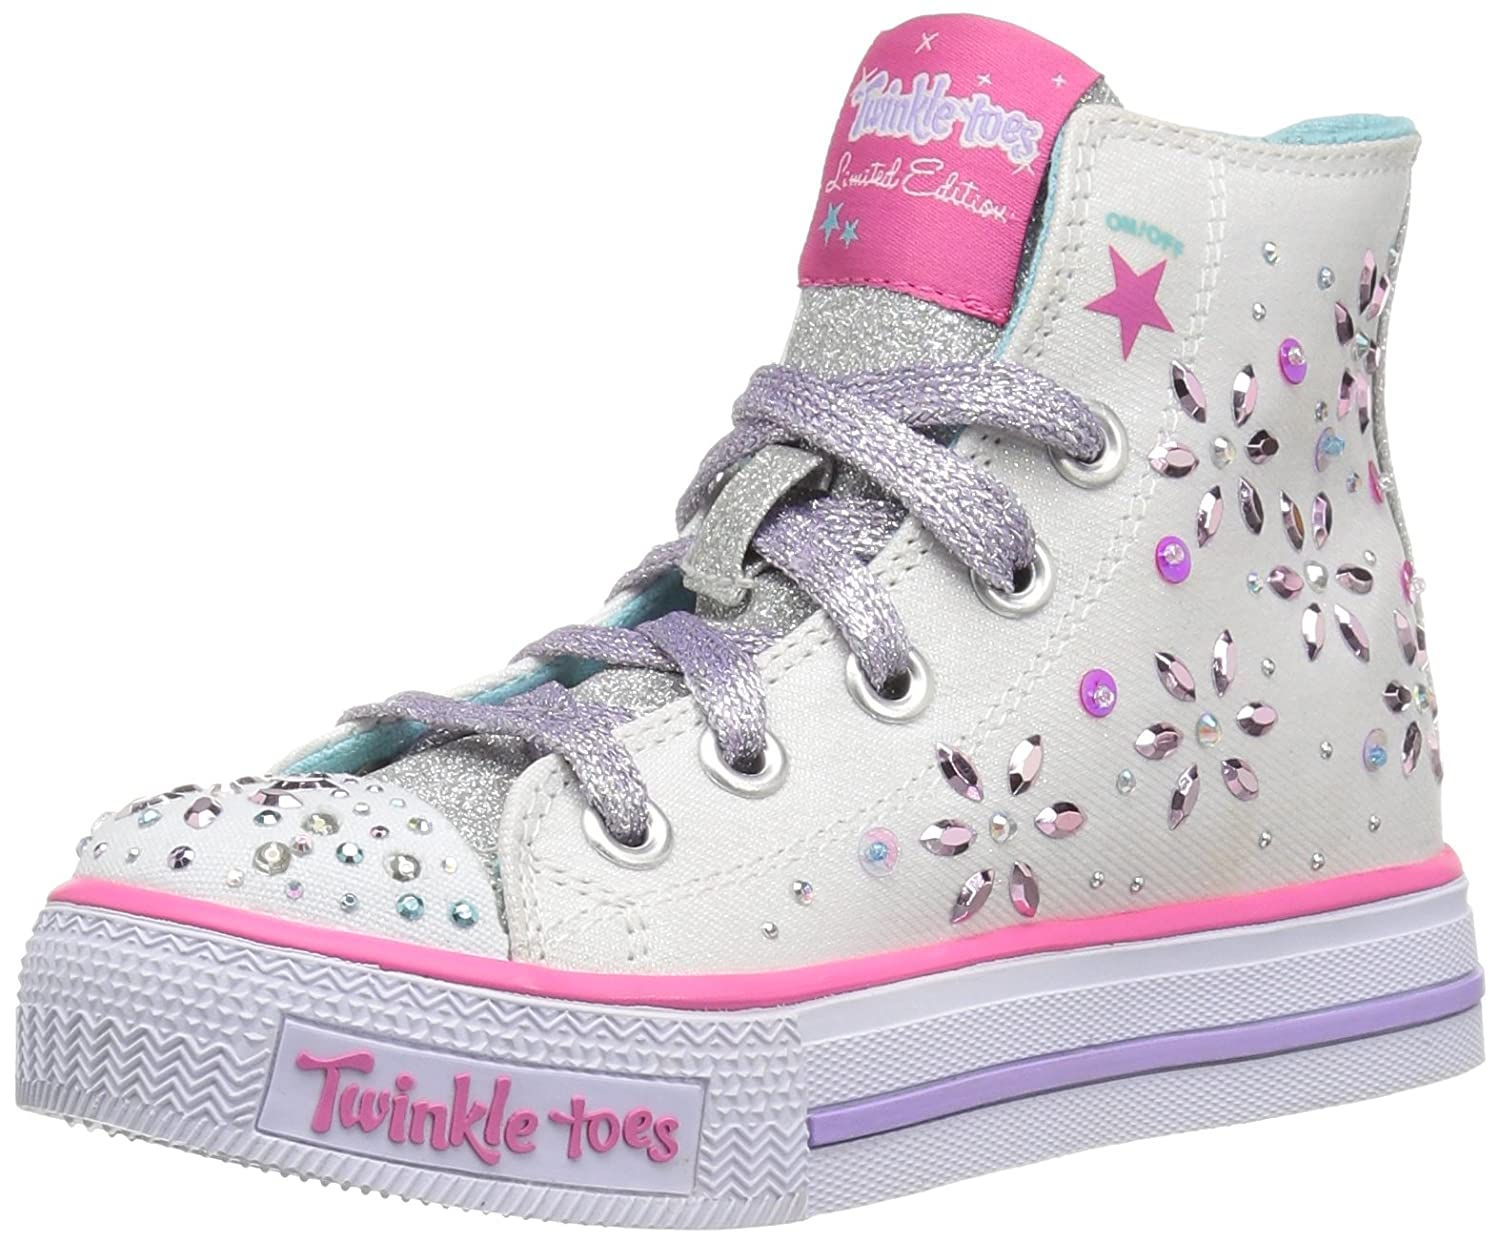 Skechers Girls' Twinkle Toes Shuffles Sparkly and Sweet High Top